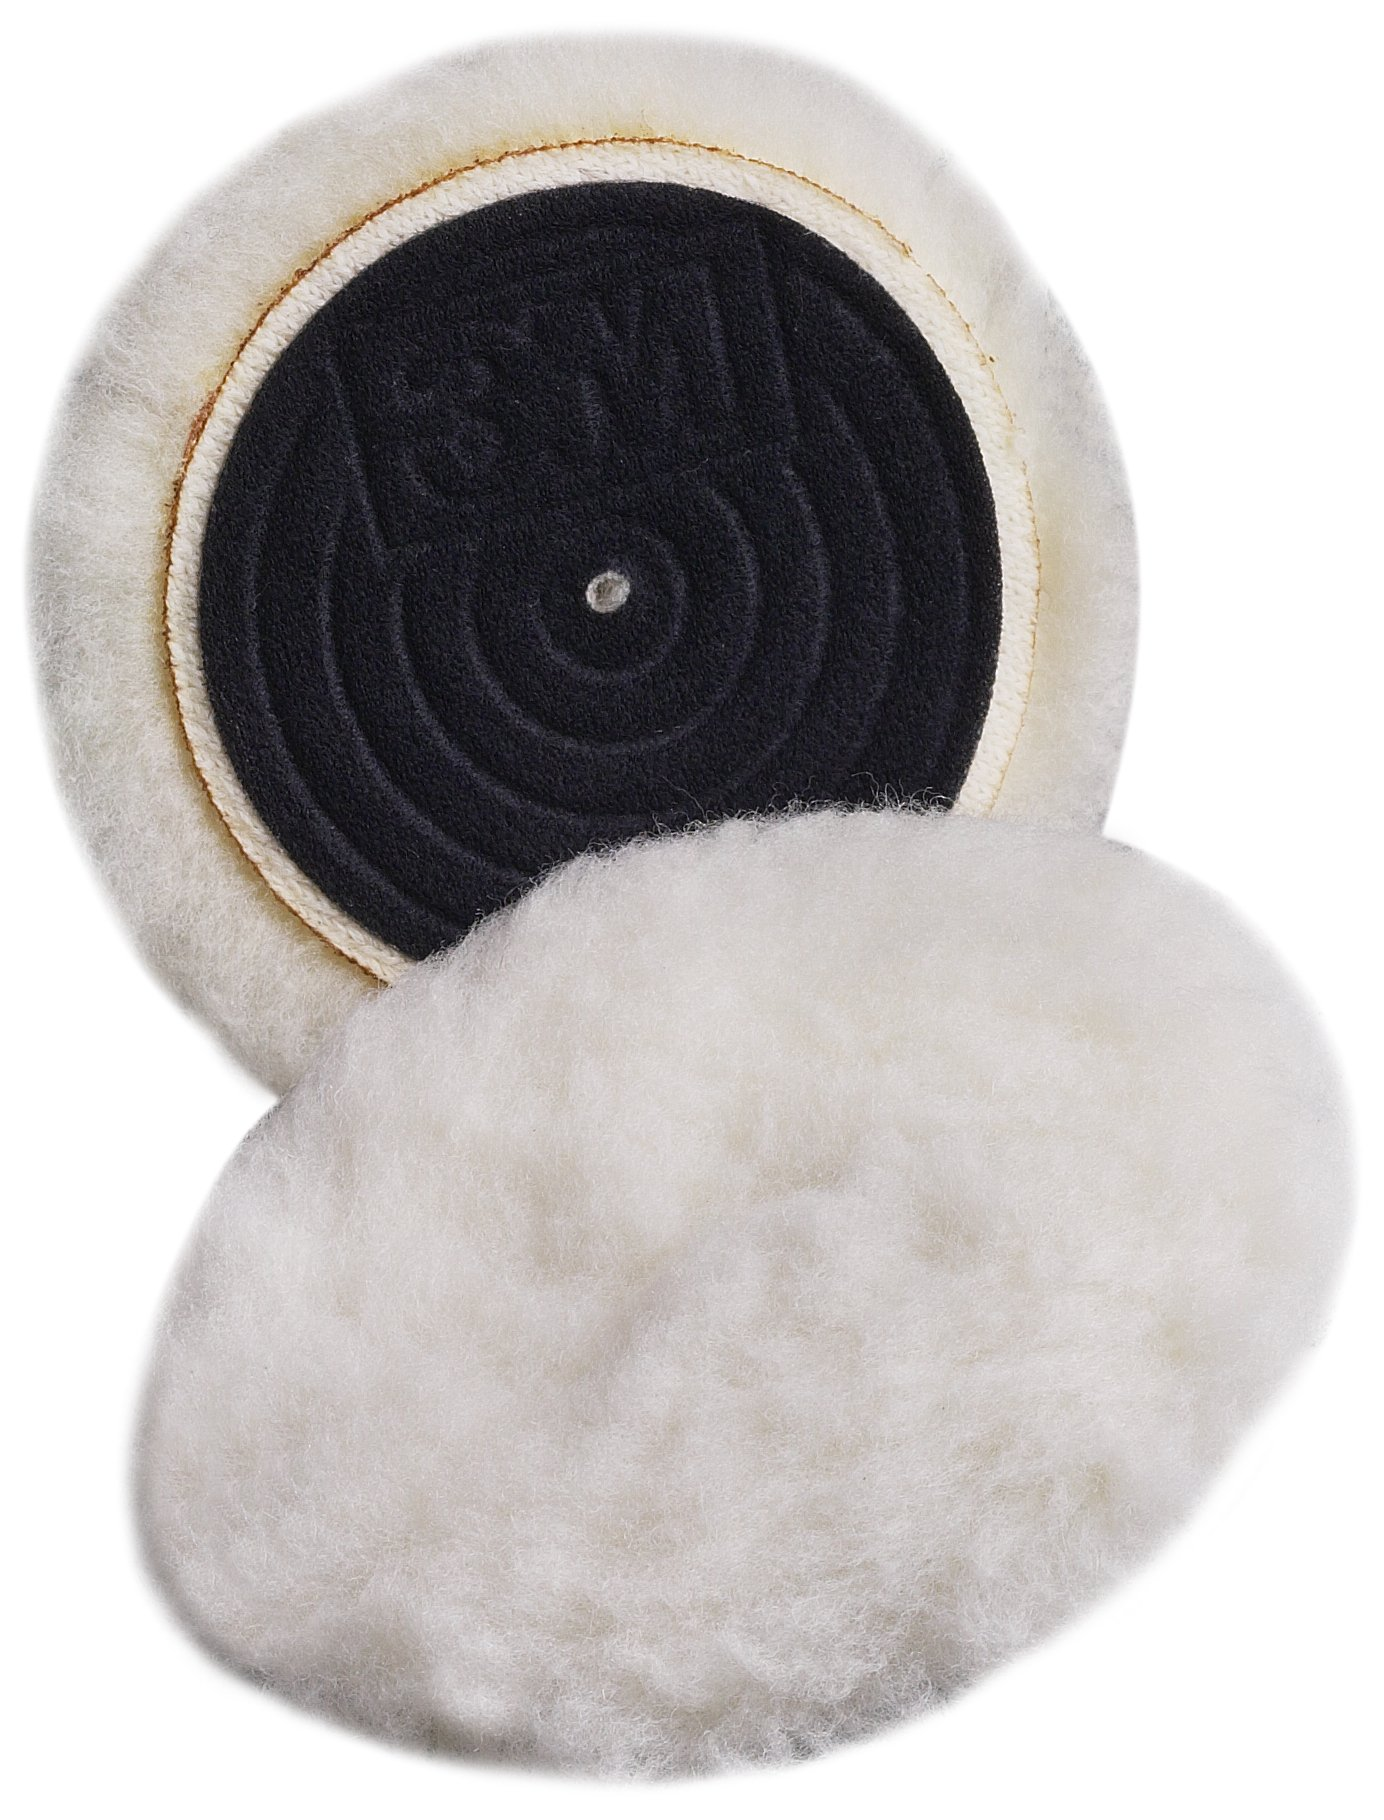 3M Finesse-it Knit II Buffing Pad 85099, Hook-and-Loop, 3'' Diameter, 11/16'' Pile Height, White (Pack of 10) by Cubitron II